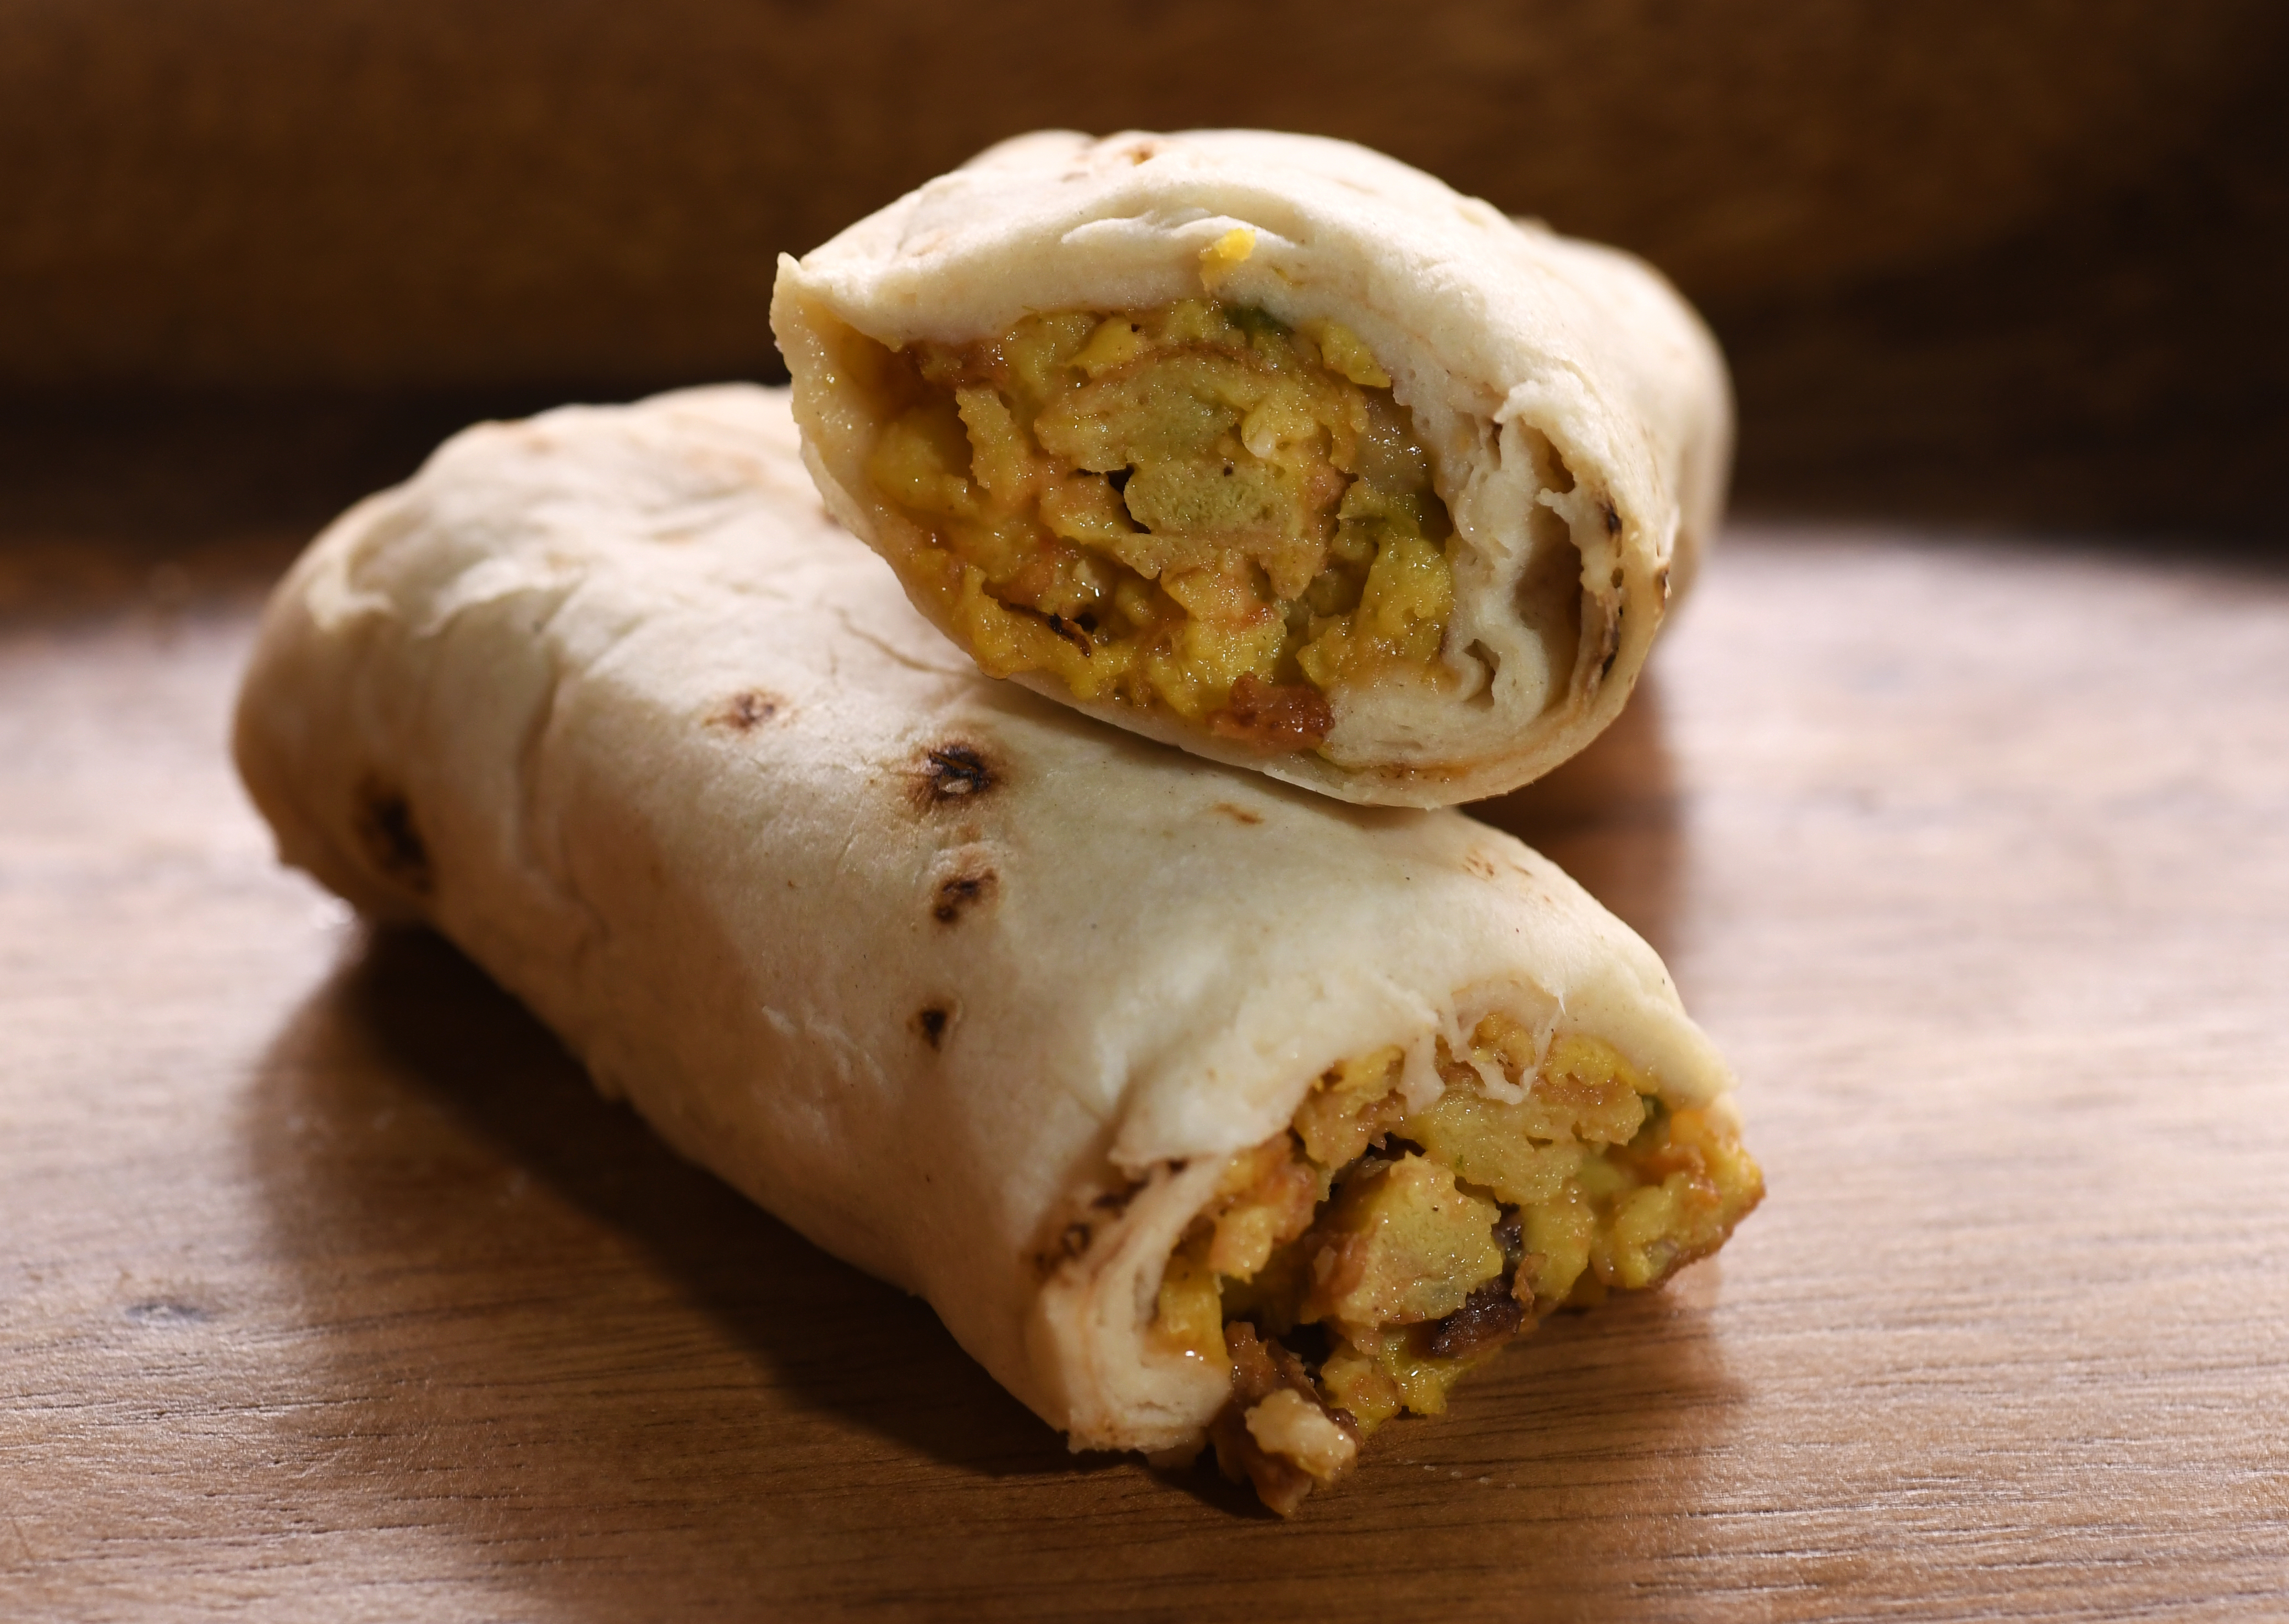 What Monster Is Attempting to Trademark 'Breakfast Burrito'?